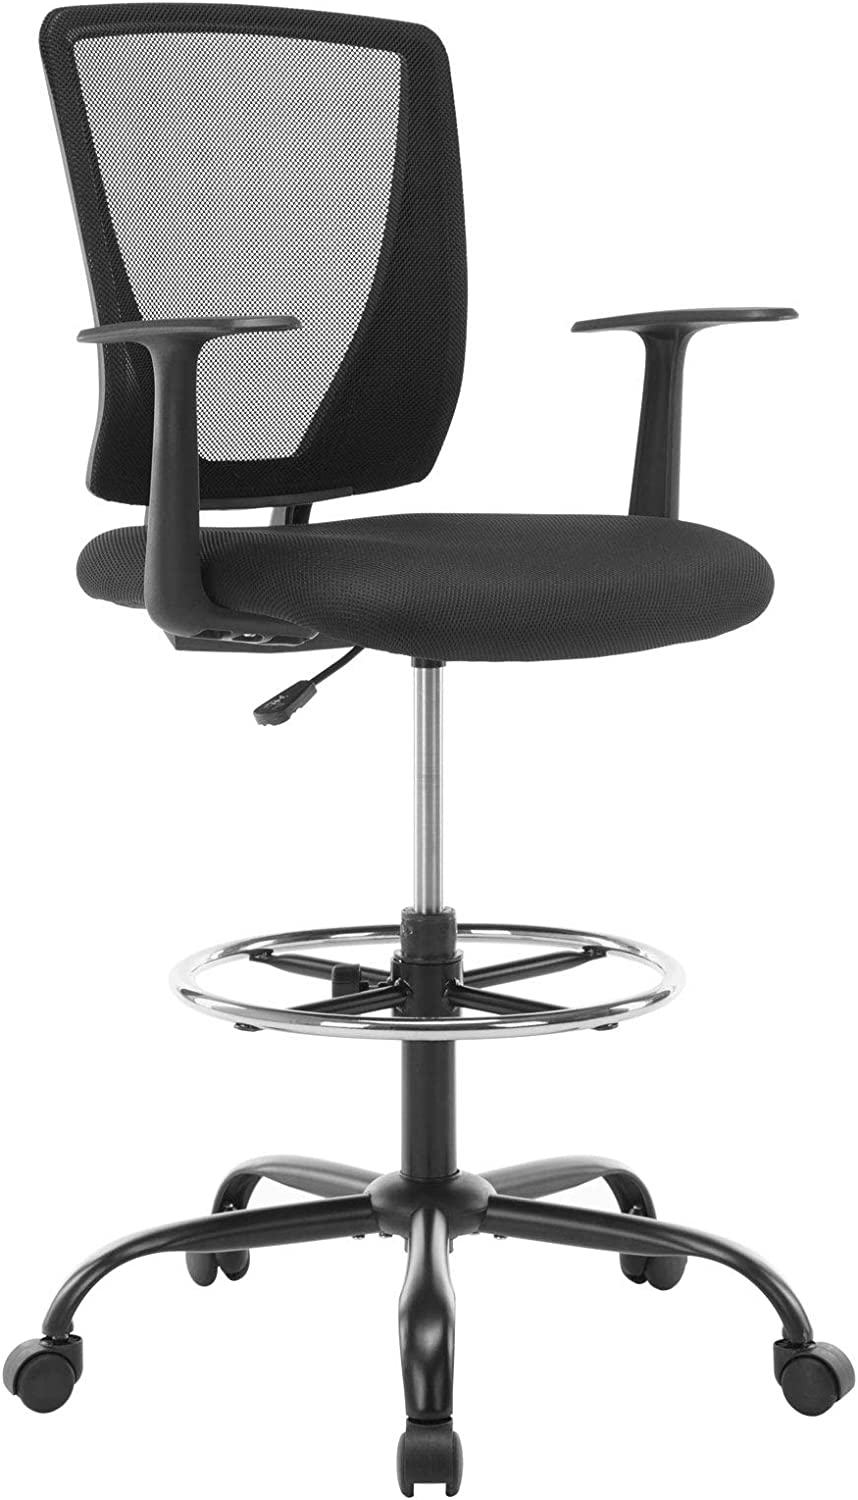 Buyffer Mid Back Mesh Drafting Office Chair in Black with Adjustable Height and Foot Ring, Ergonomic Computer Chair for Standing Desk, 300lb Weight Capacity, OC01BK